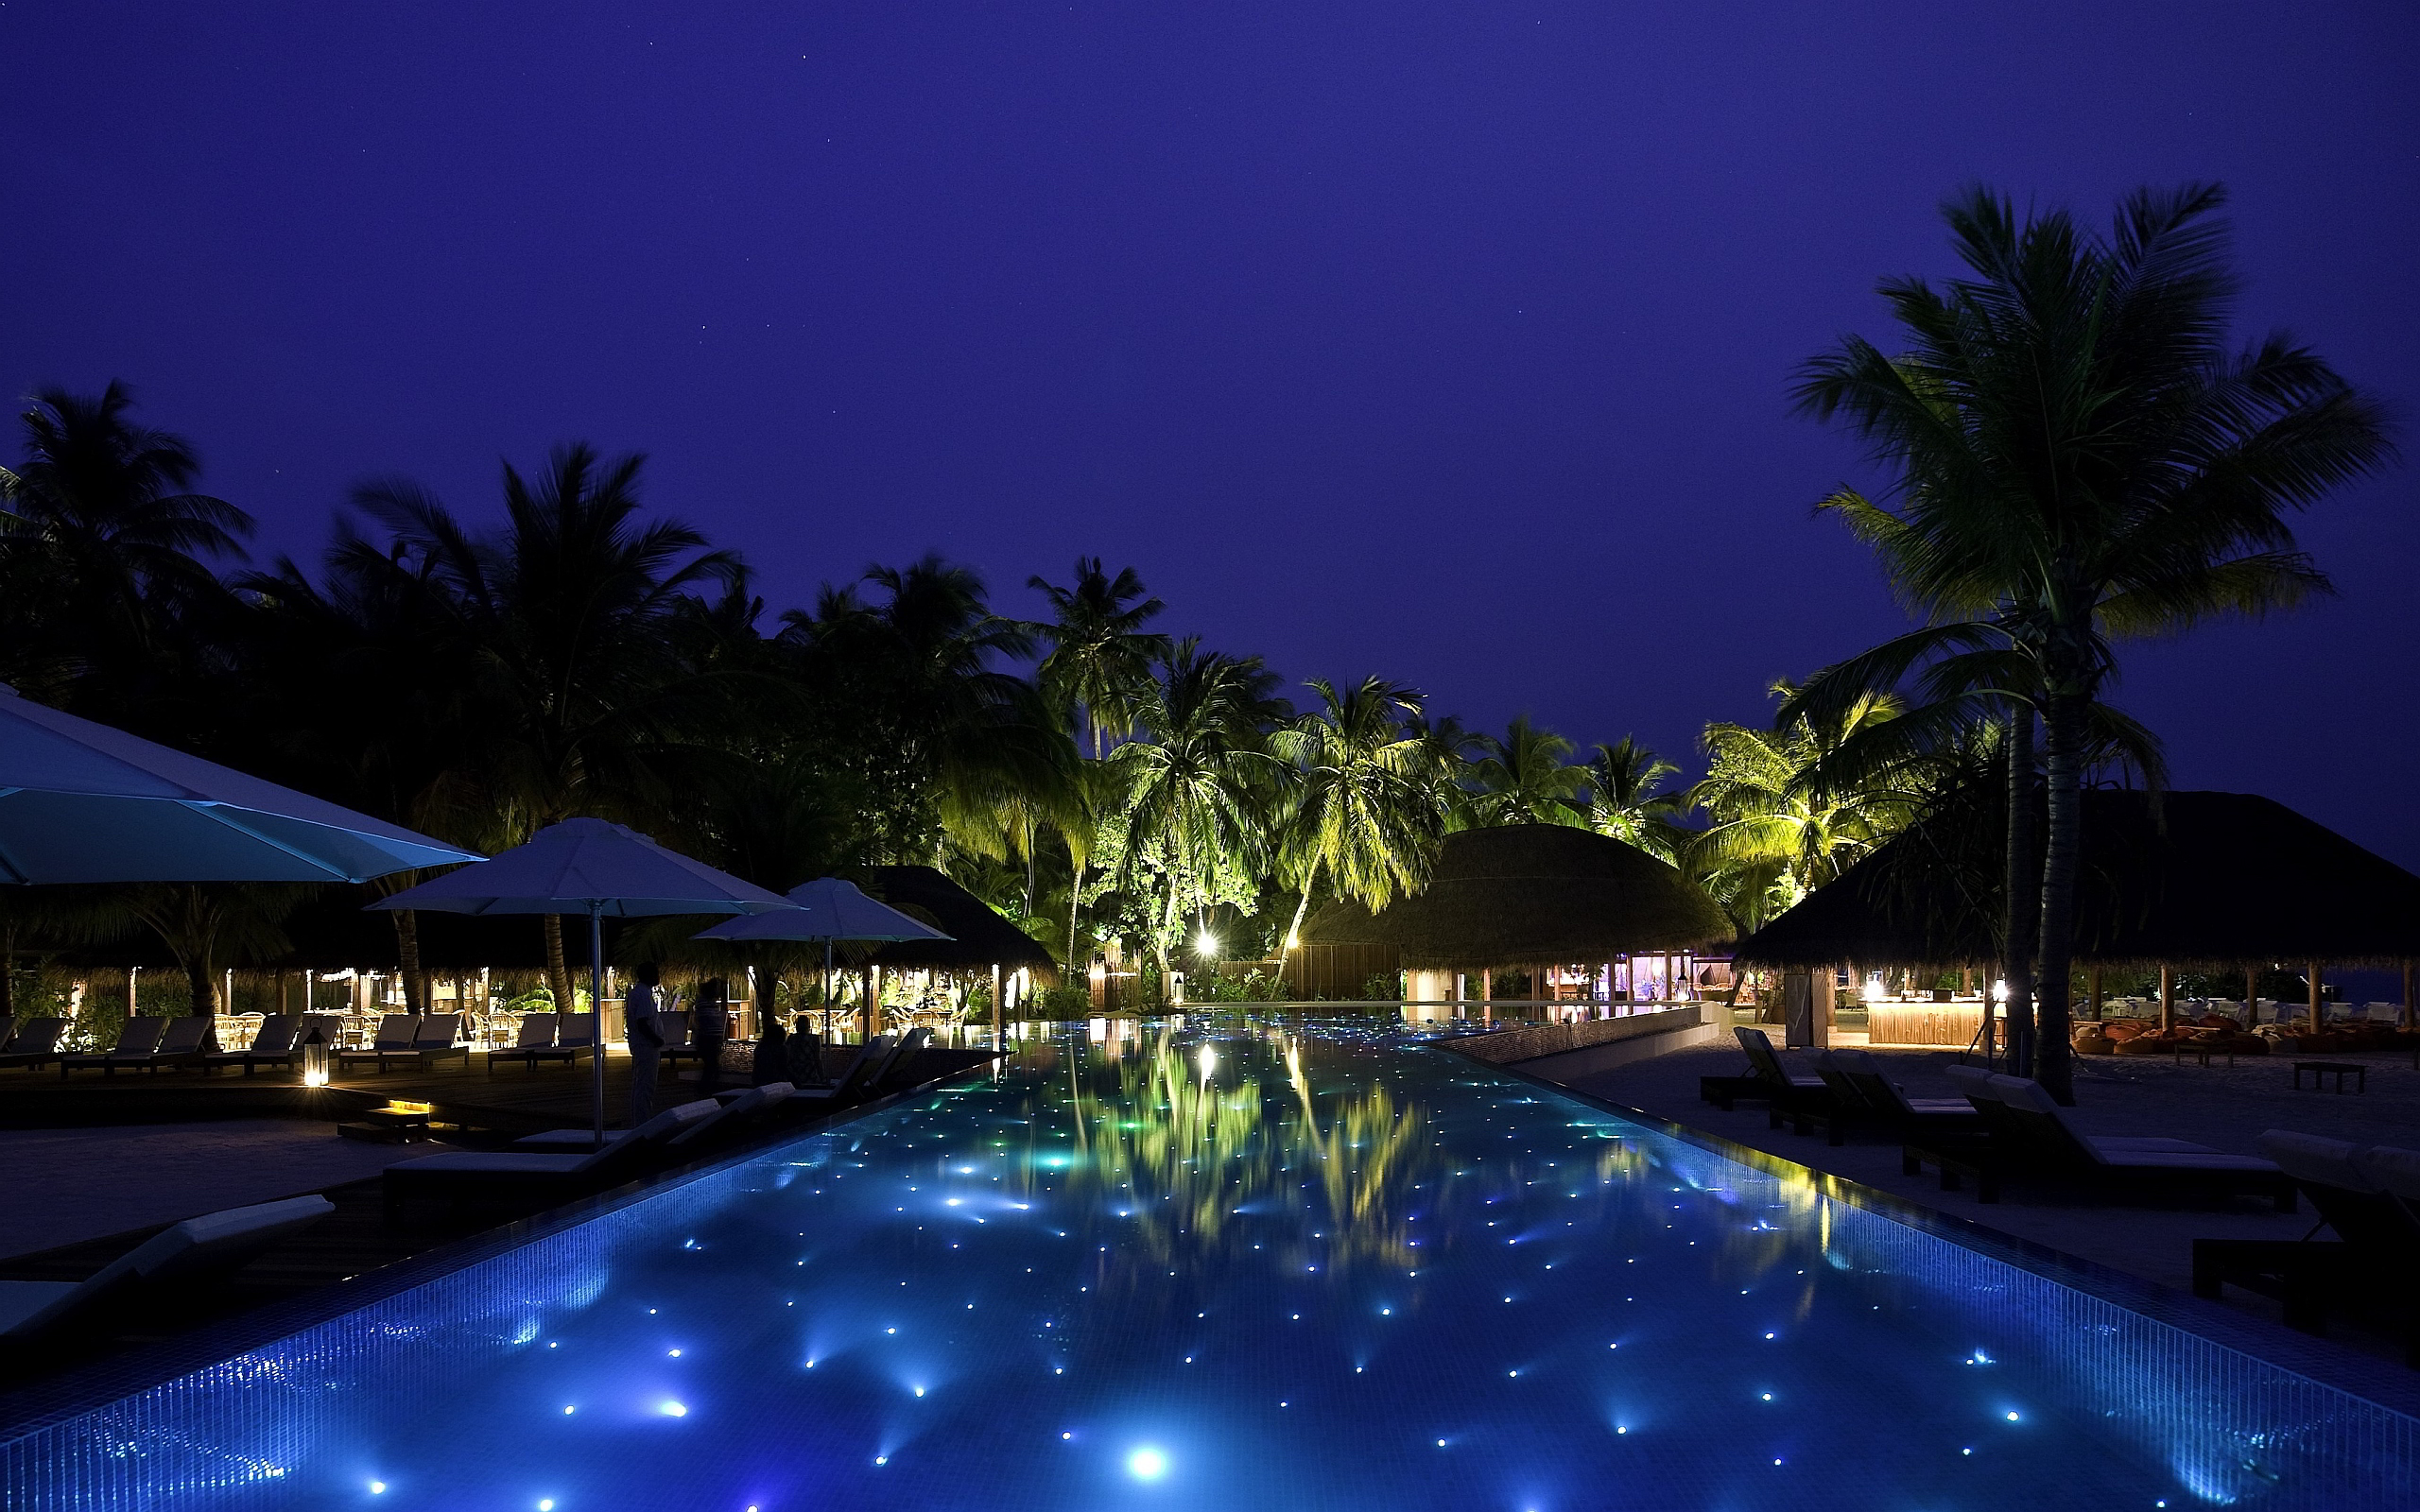 Resort pool lights